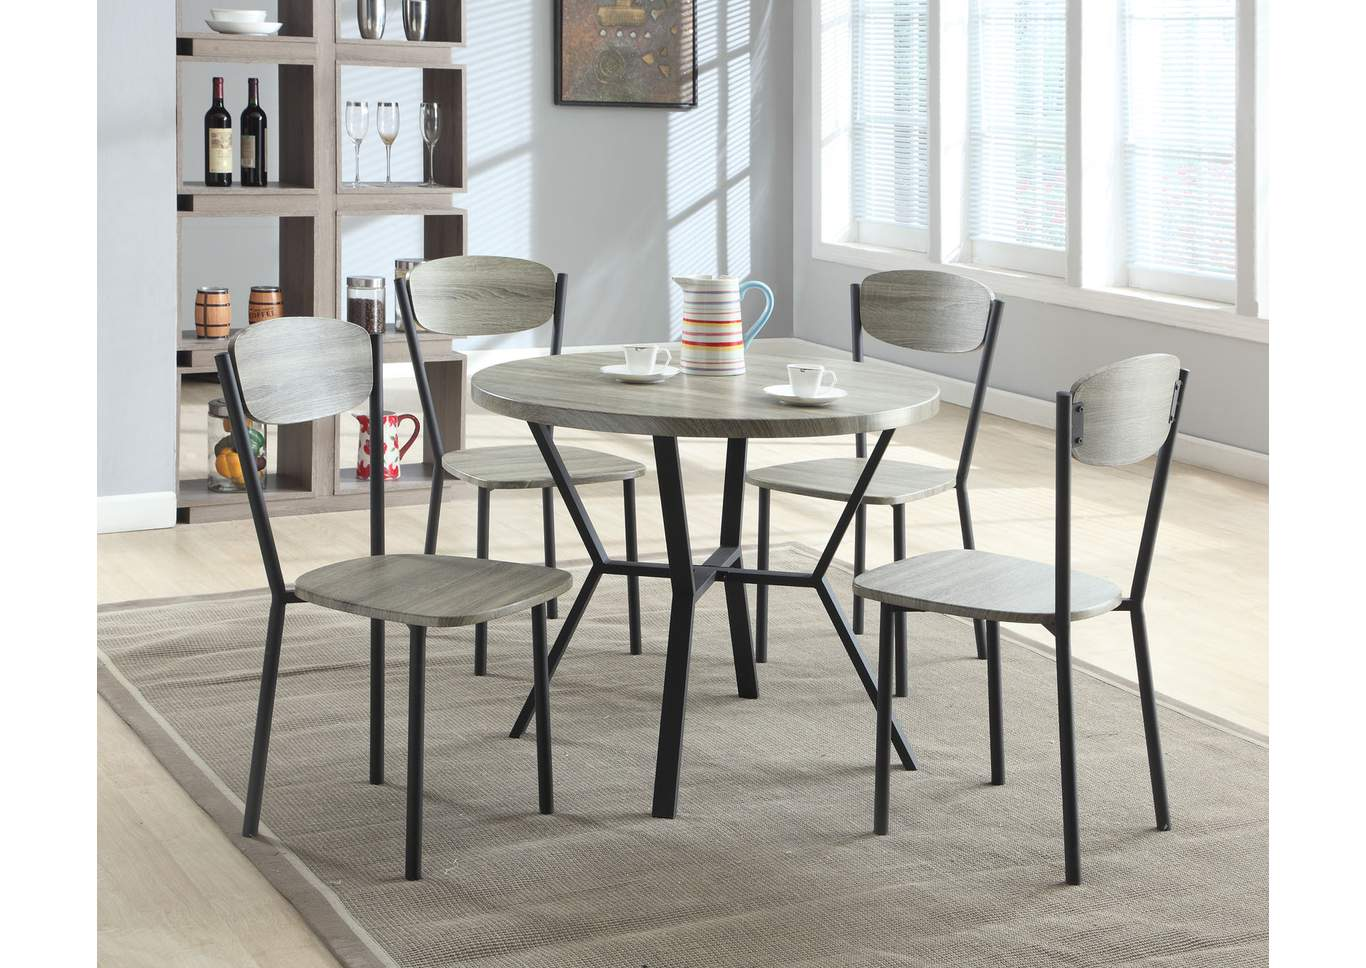 Blake 5 Piece Set Round Dining Table/Chair,Crown Mark